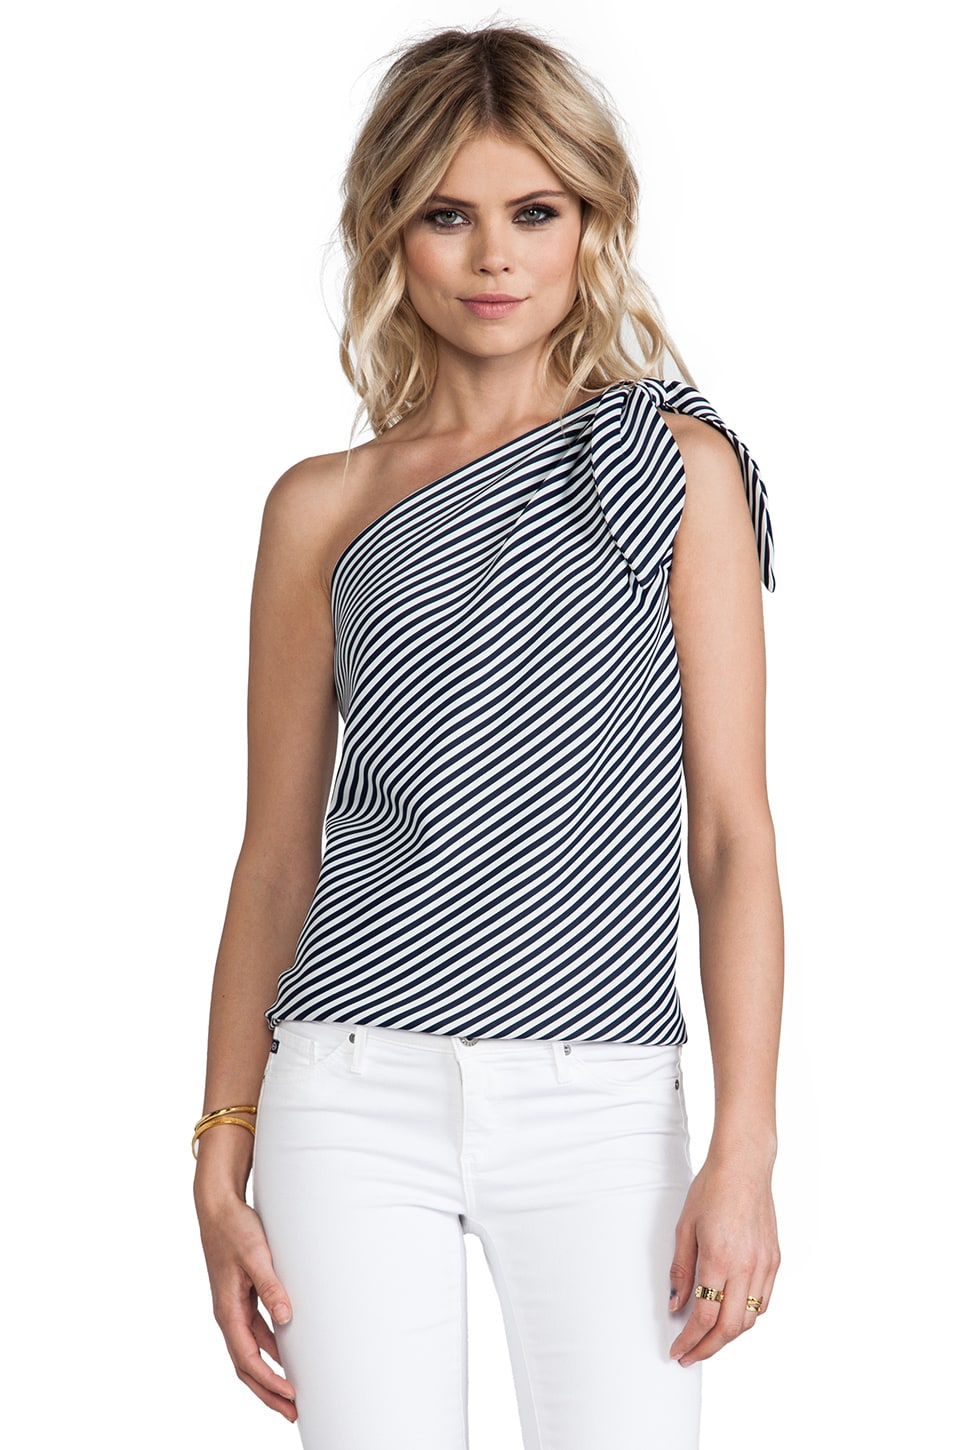 Halston Heritage One Shoulder Top in Navy & Chalk